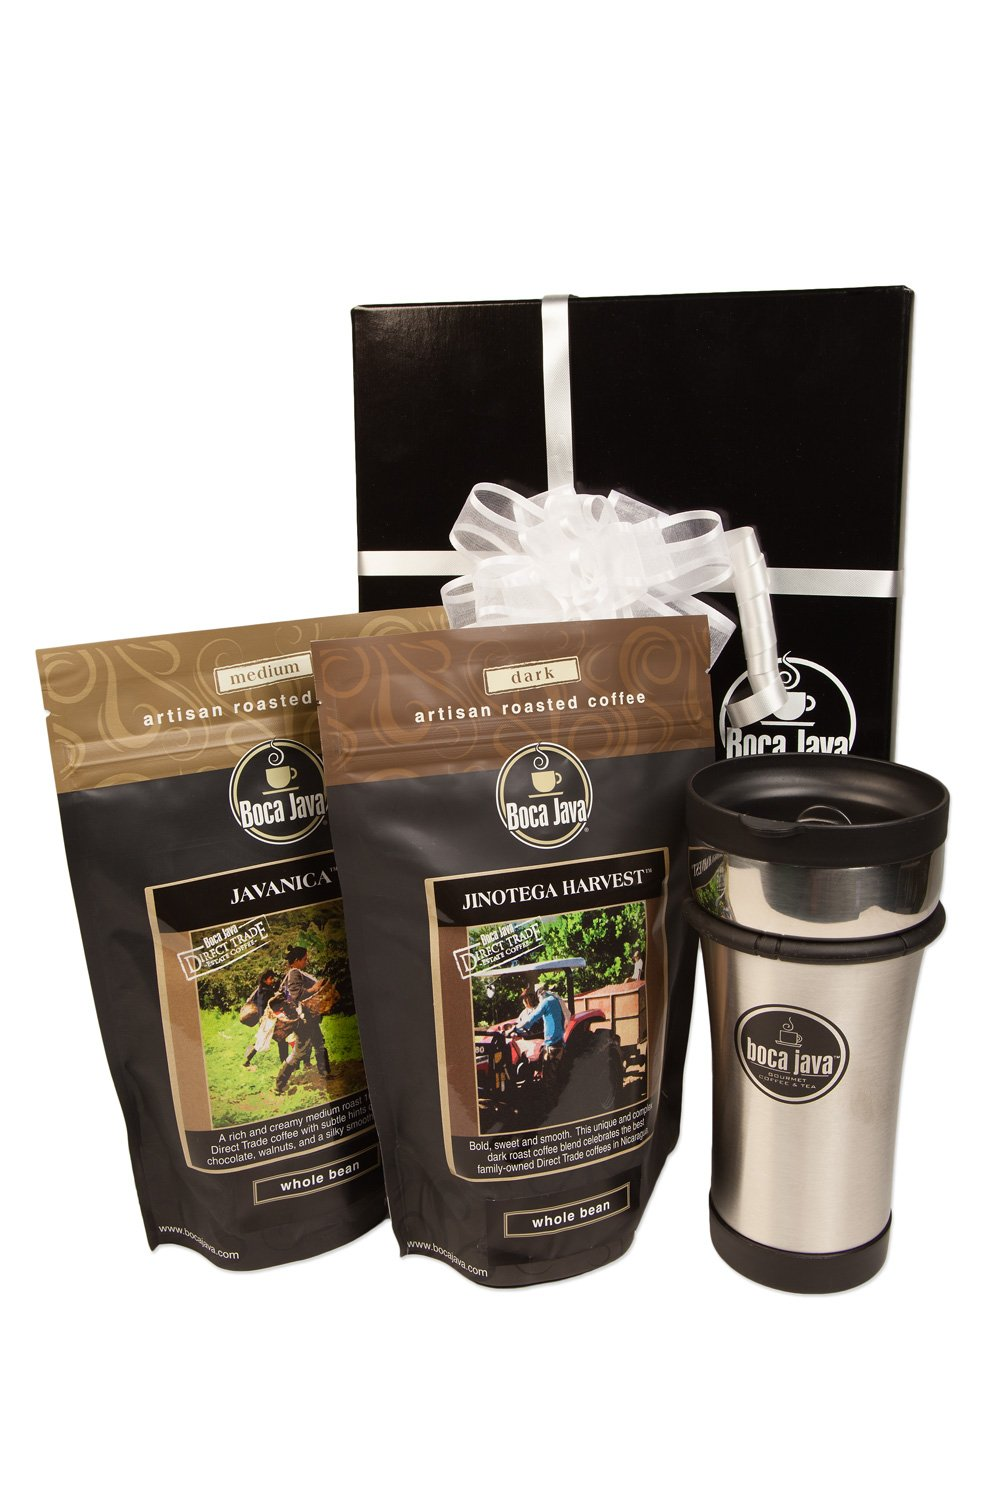 Boca Java Roast to Order Coffee, Direct Trade Coffee Gift Set - Whole Bean Coffee